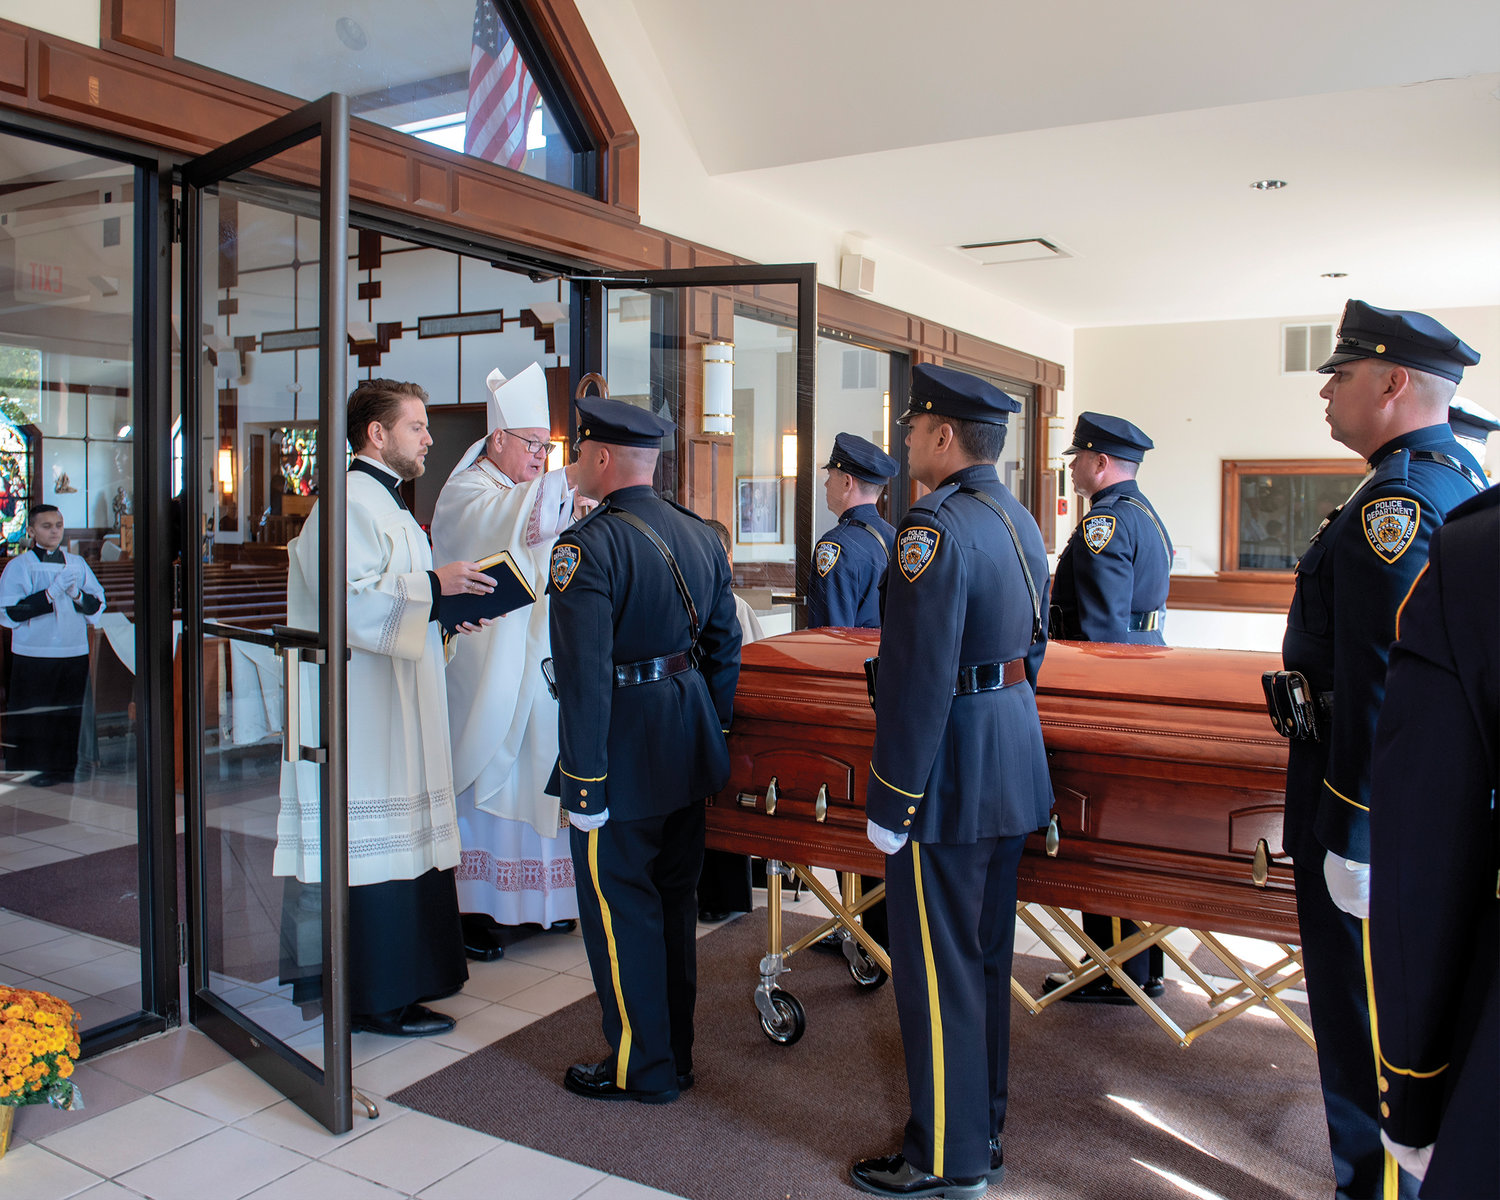 Cardinal Dolan blesses the casket of NYPD Officer Brian Mulkeen at Sacred Heart Church in Monroe Oct. 4, where the cardinal celebrated the Funeral Mass of the 33-year-old officer who died from friendly fire in the line of duty in the Bronx. At the cardinal's side is his priest secretary, Father Stephen Ries.